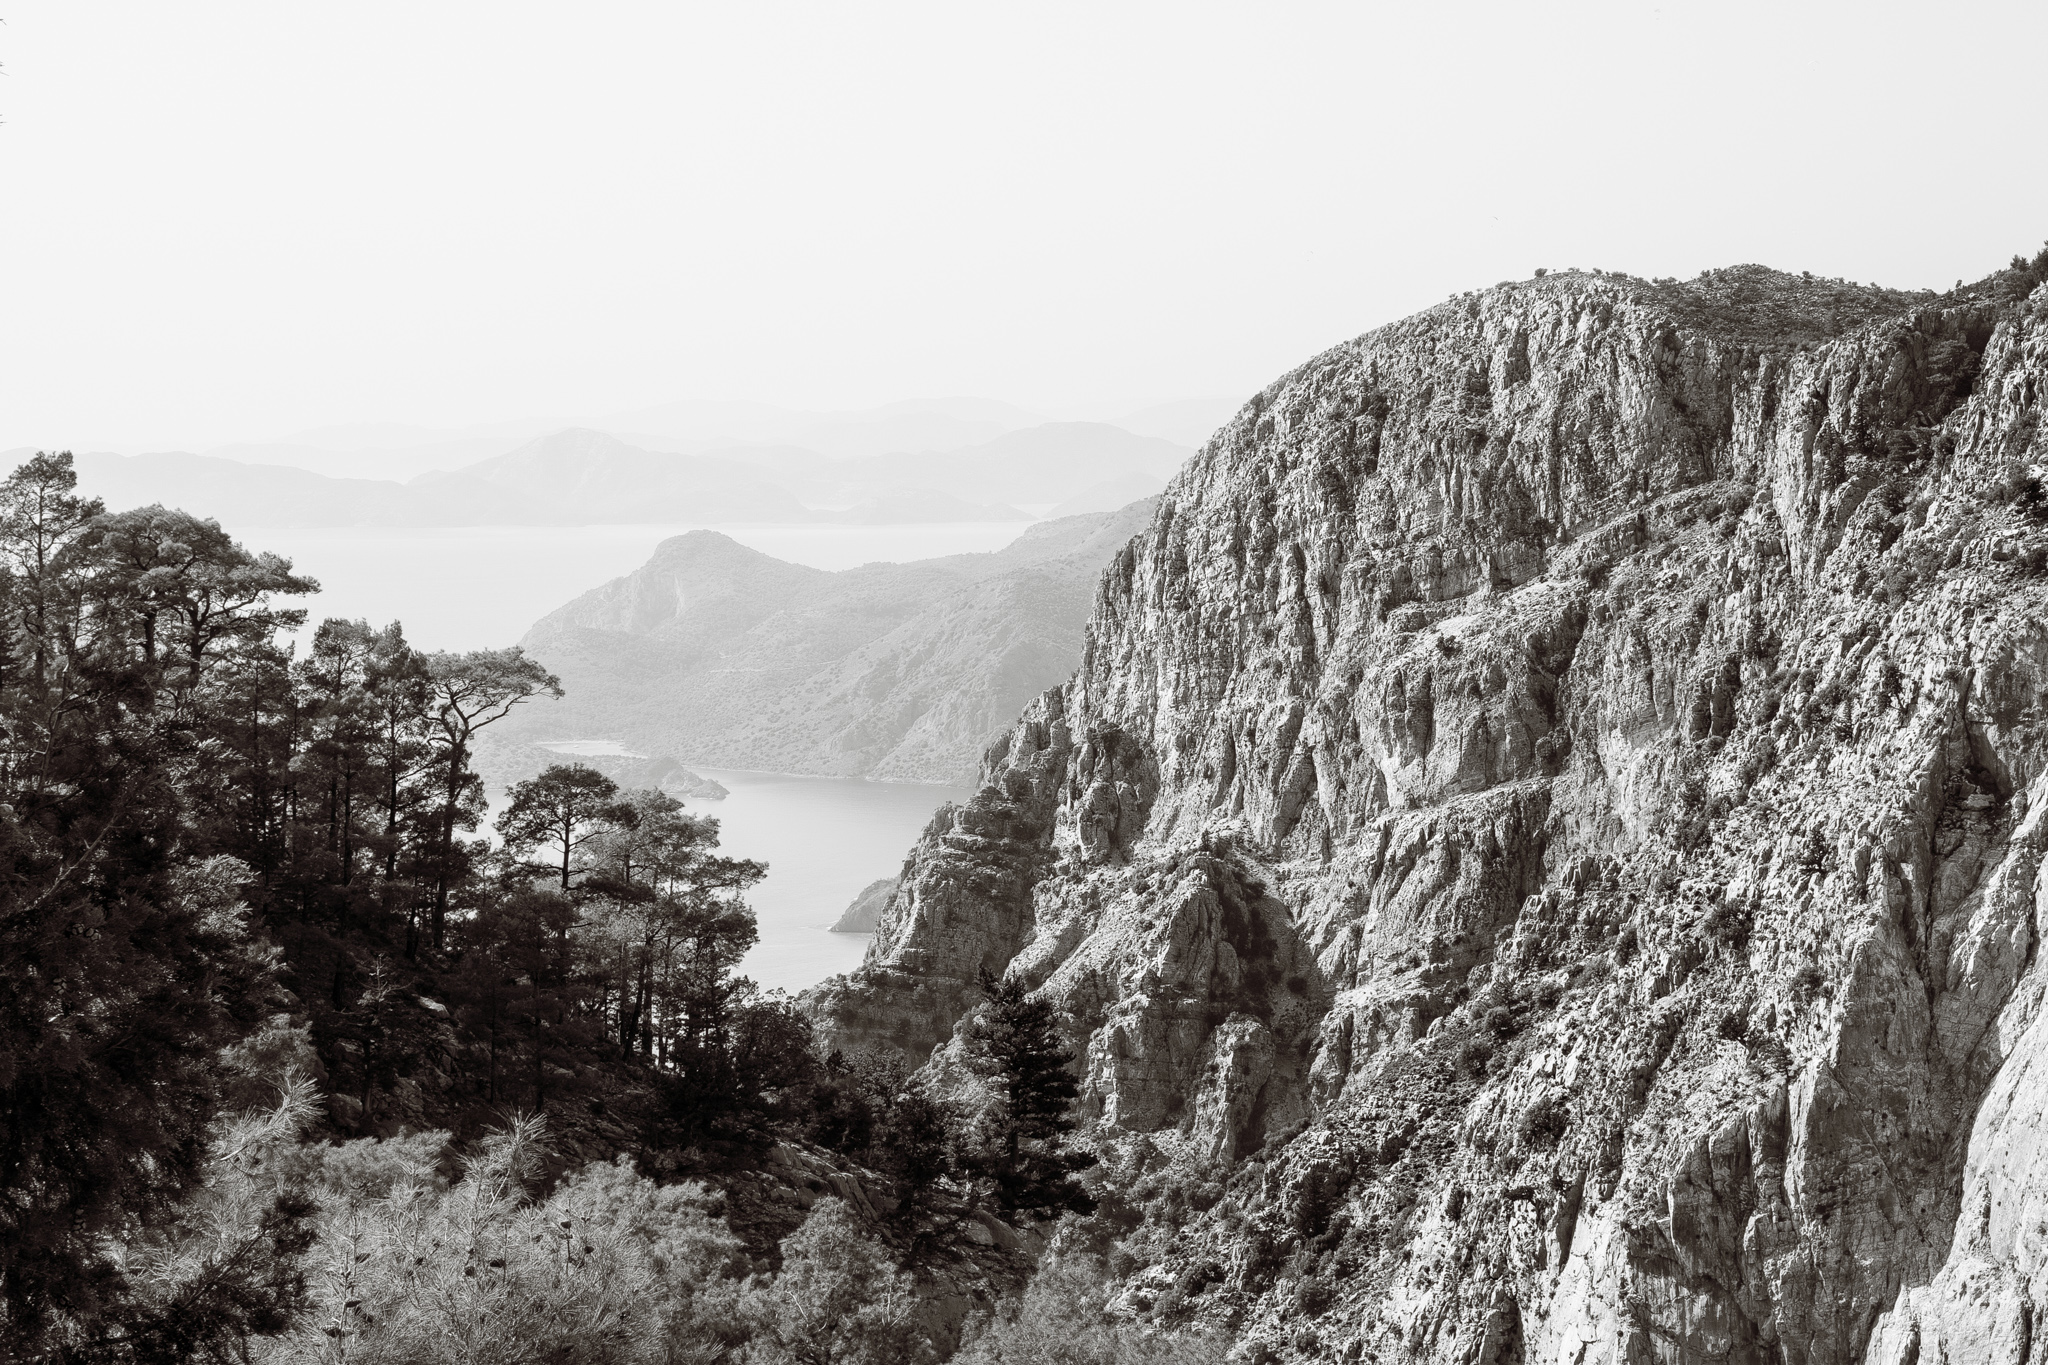 lycian-way_village1-2790-Edit_coastal-mountainside_bw.jpg